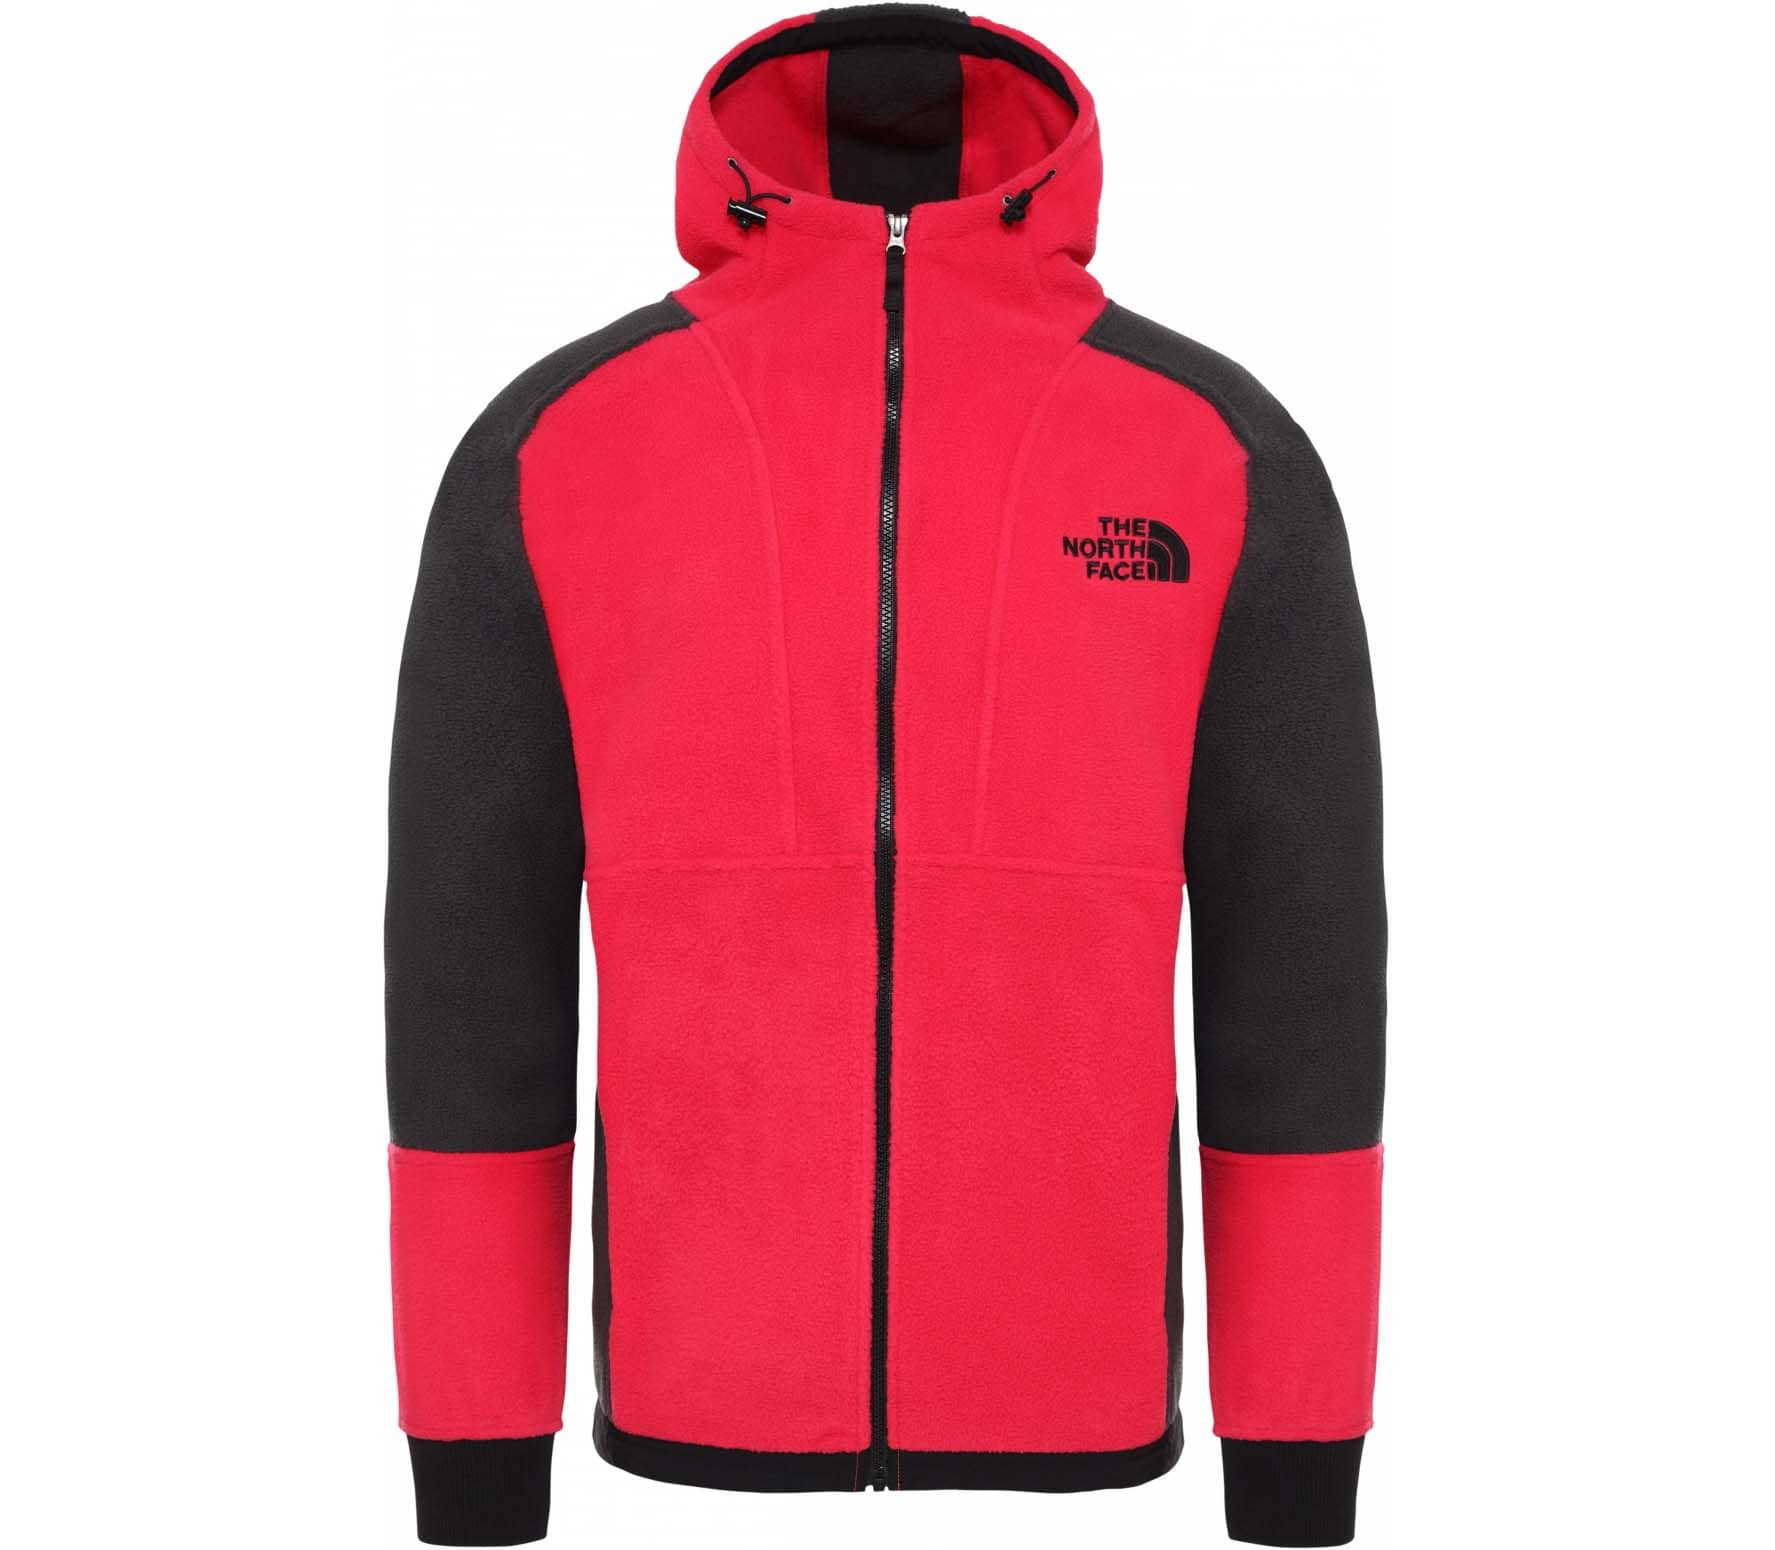 The North Face 94 Rage Classic Fleece Unisex Hoodie pink